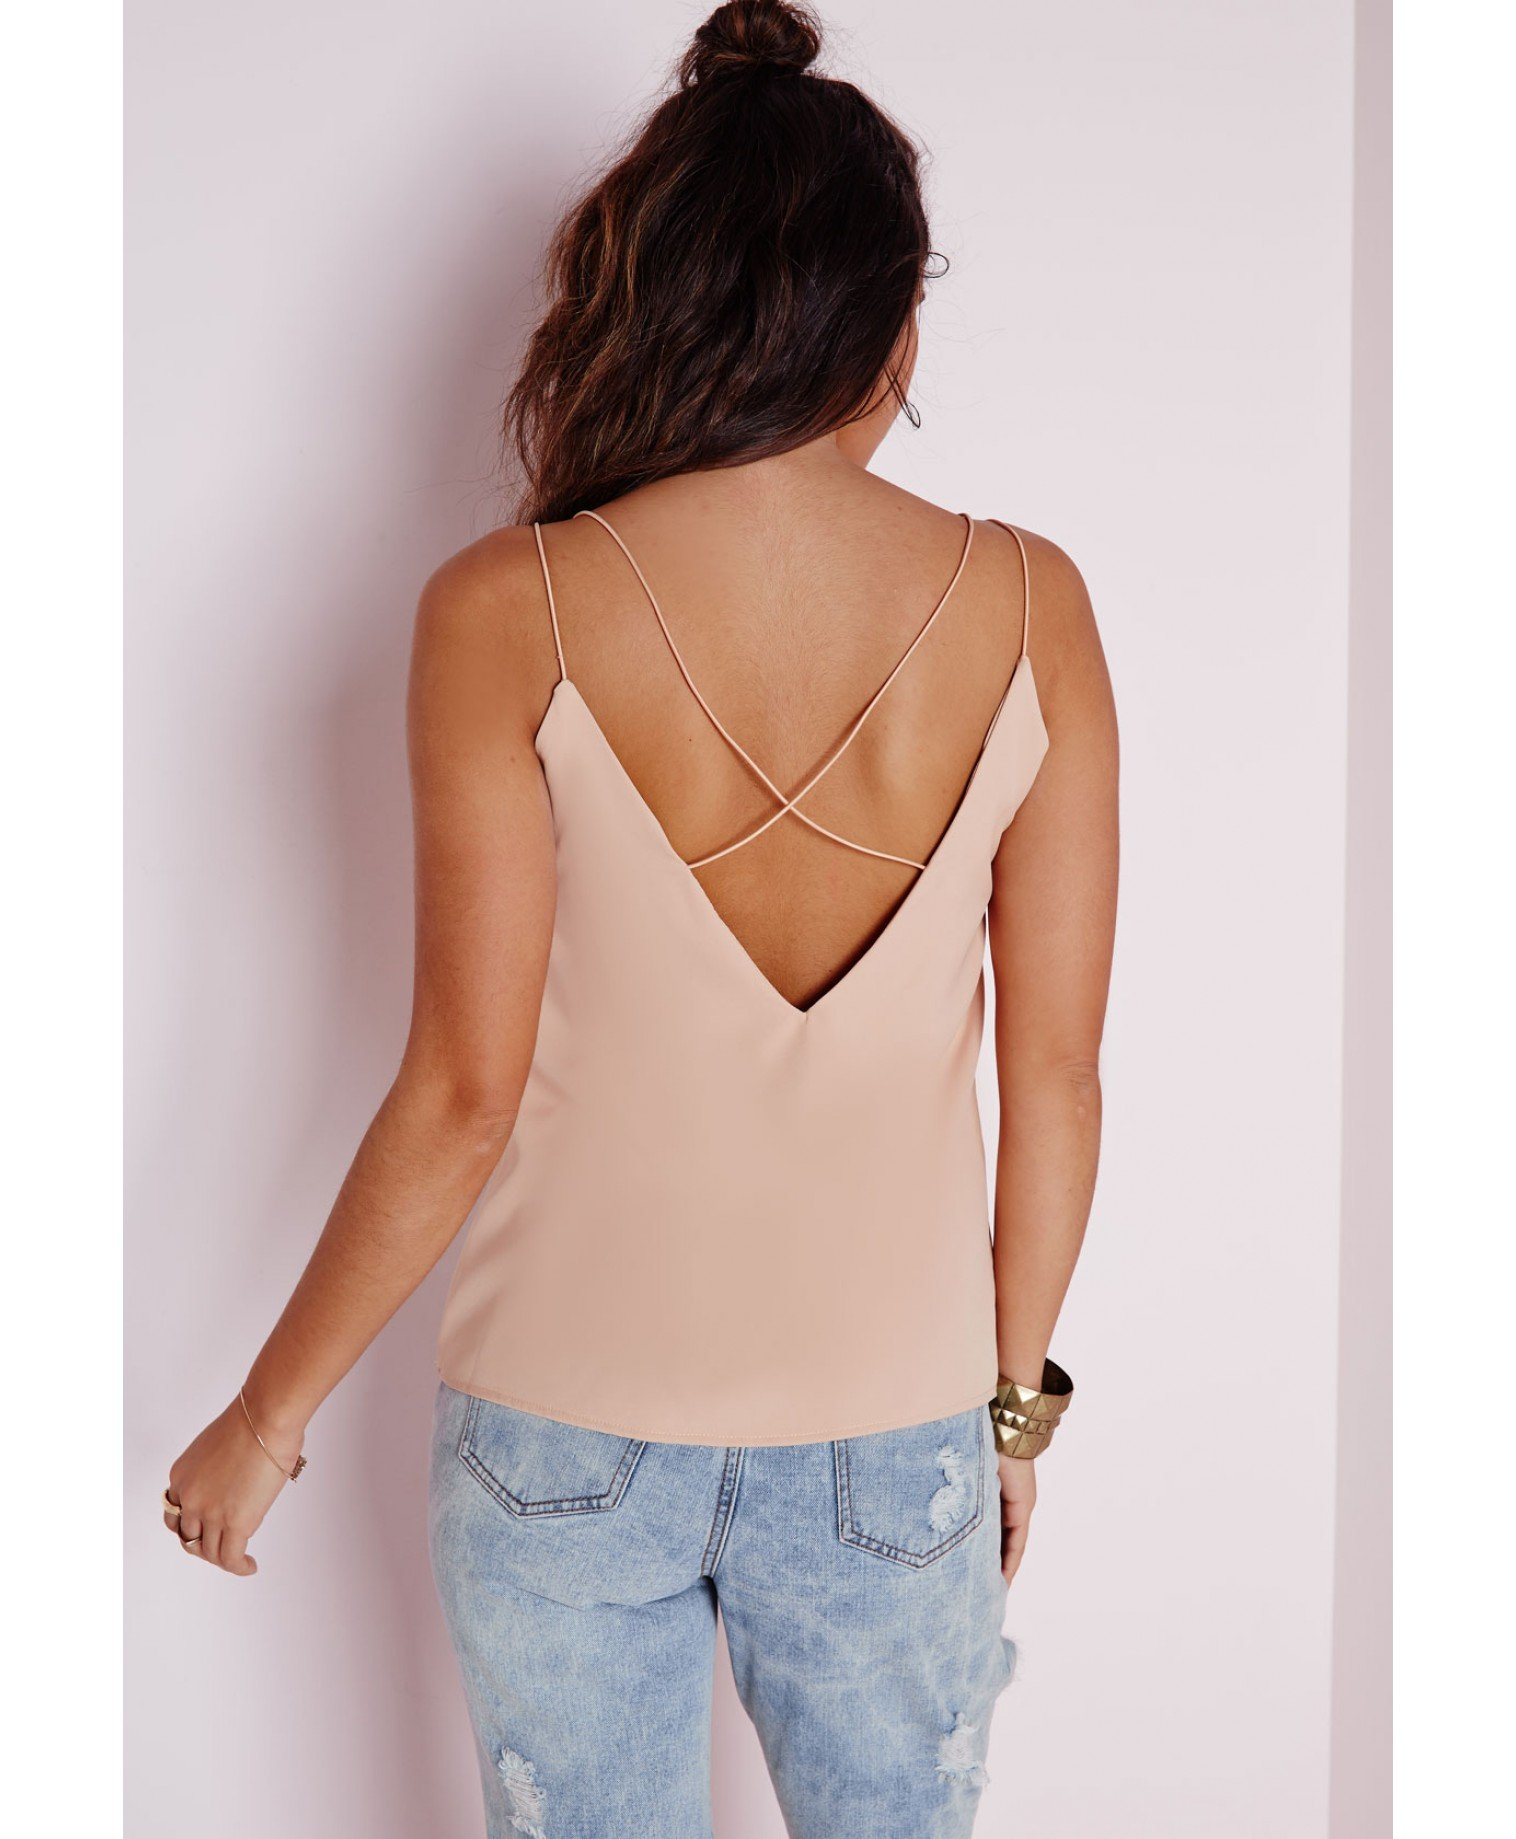 Lyst - Missguided Petite Nude Corded Lace Harness Bodysuit